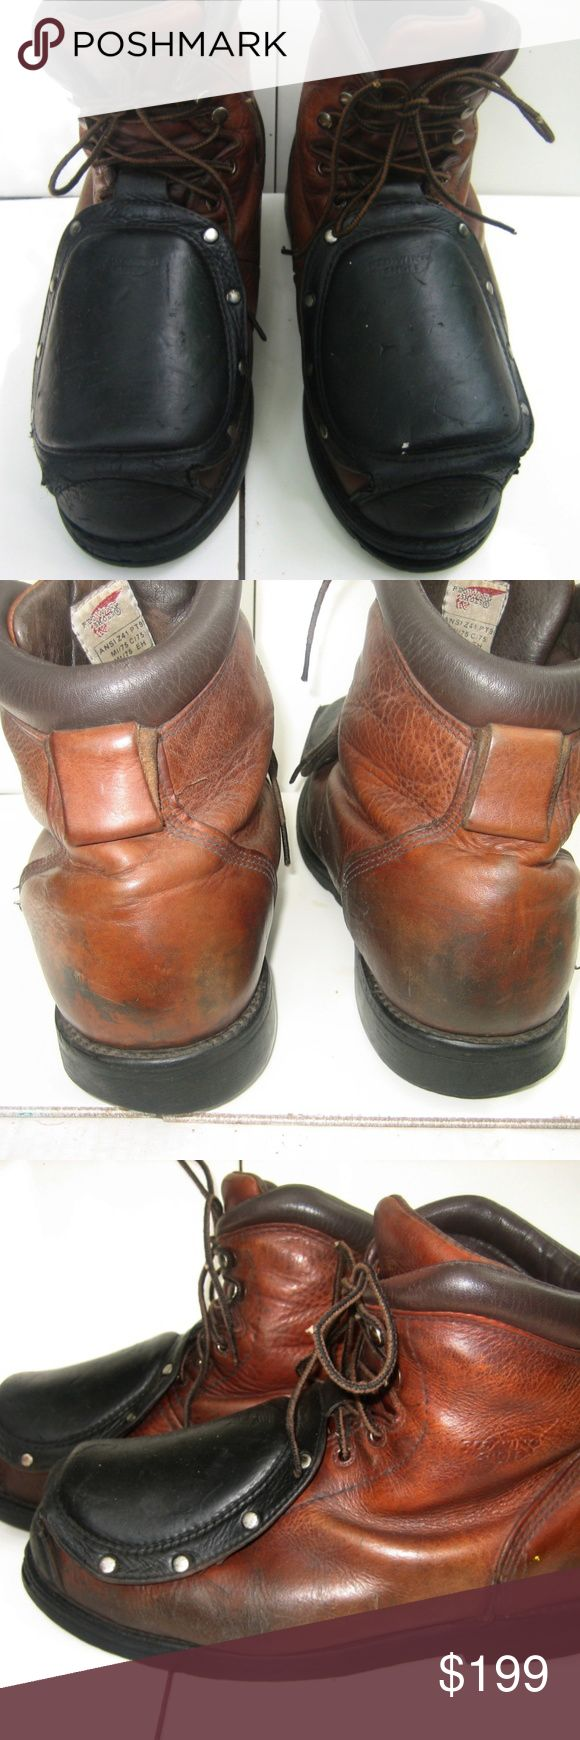 """RED WING 4476 Metatarsal Steel Toe Ankle Boots, 9 MET GUARD WORK/SAFETY LEATHER ANKLE BOOTS : used condition.   U.S.A Made.. Brown leather with steel toes & steel shank. 6 eye-lets.Black metatarsal guard for toe safety, welding. Oil slip resistance . Removable cushioned polysorb insoles by SPENCO.  Silver-tone stud accents and pull tabs. Stock #. 4476-08105.   Size 9. U.S. Size 42 EU. Widest sole 4.5"""". Full length 12.25"""".   Wear: Scratches, scrapes, scars, bruises, cuts, scuffs, & dings…"""